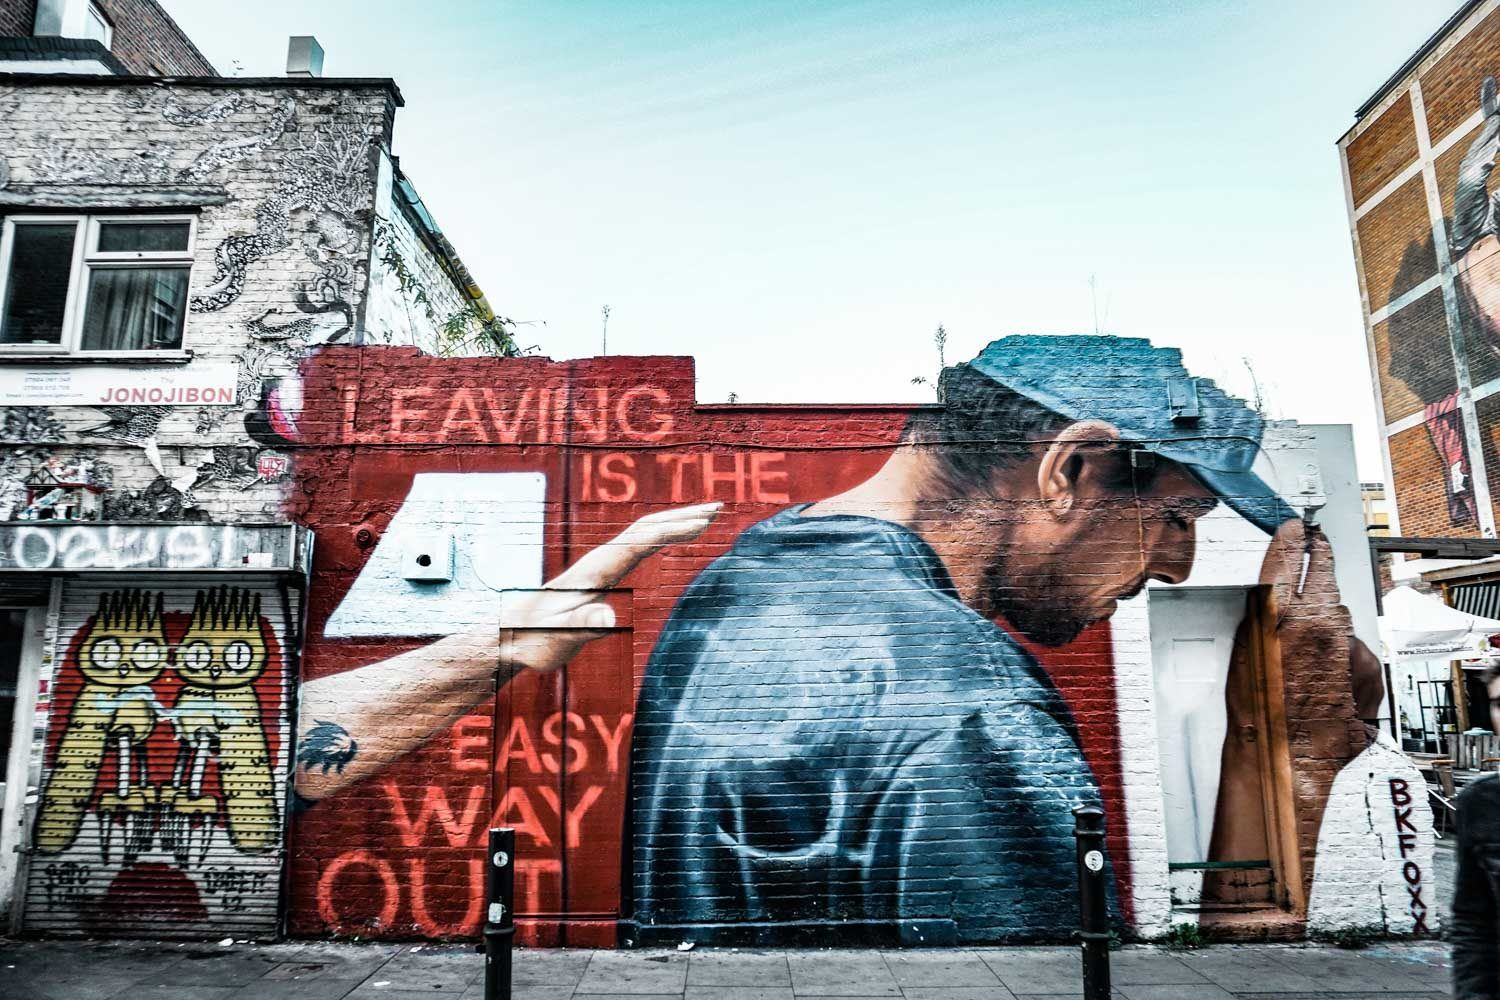 Leaving is the Easy Way Out - Urban Mural in Shoreditch